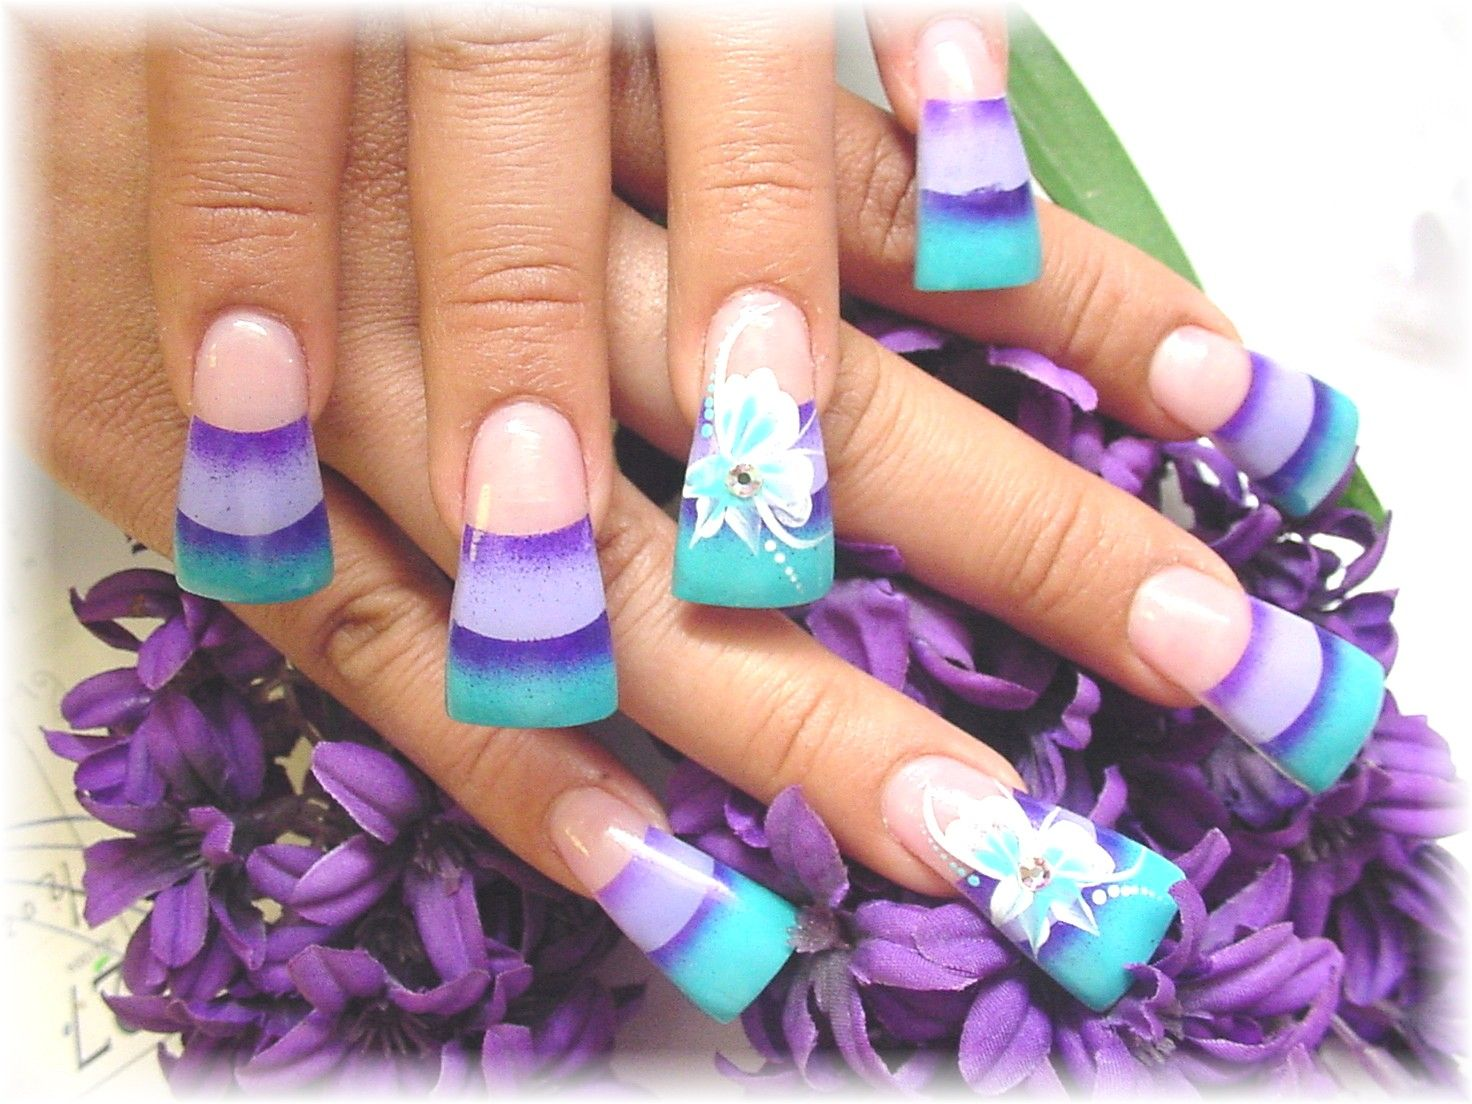 Acrylic Nail Art | COLOR ACRYLIC | Nail Designs | Pinterest ...